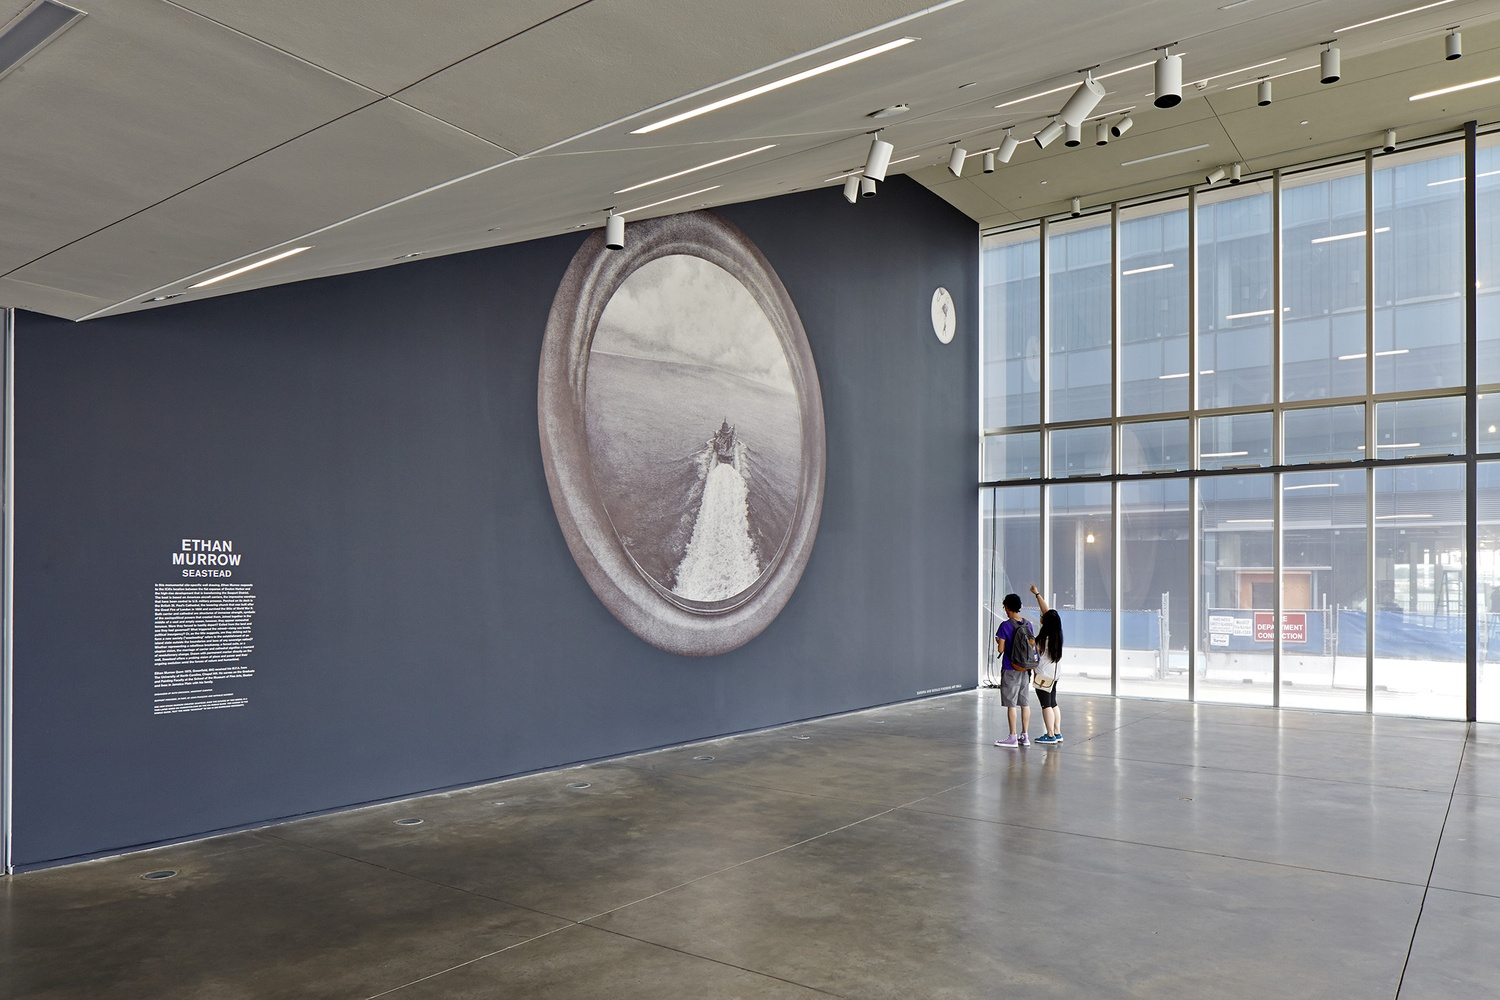 """Ethan Murrow's installation """"Seastead"""" rests in the Sandra and Gerald Fineberg Art Wall of the front lobby of the Institute of Contemporary Art."""